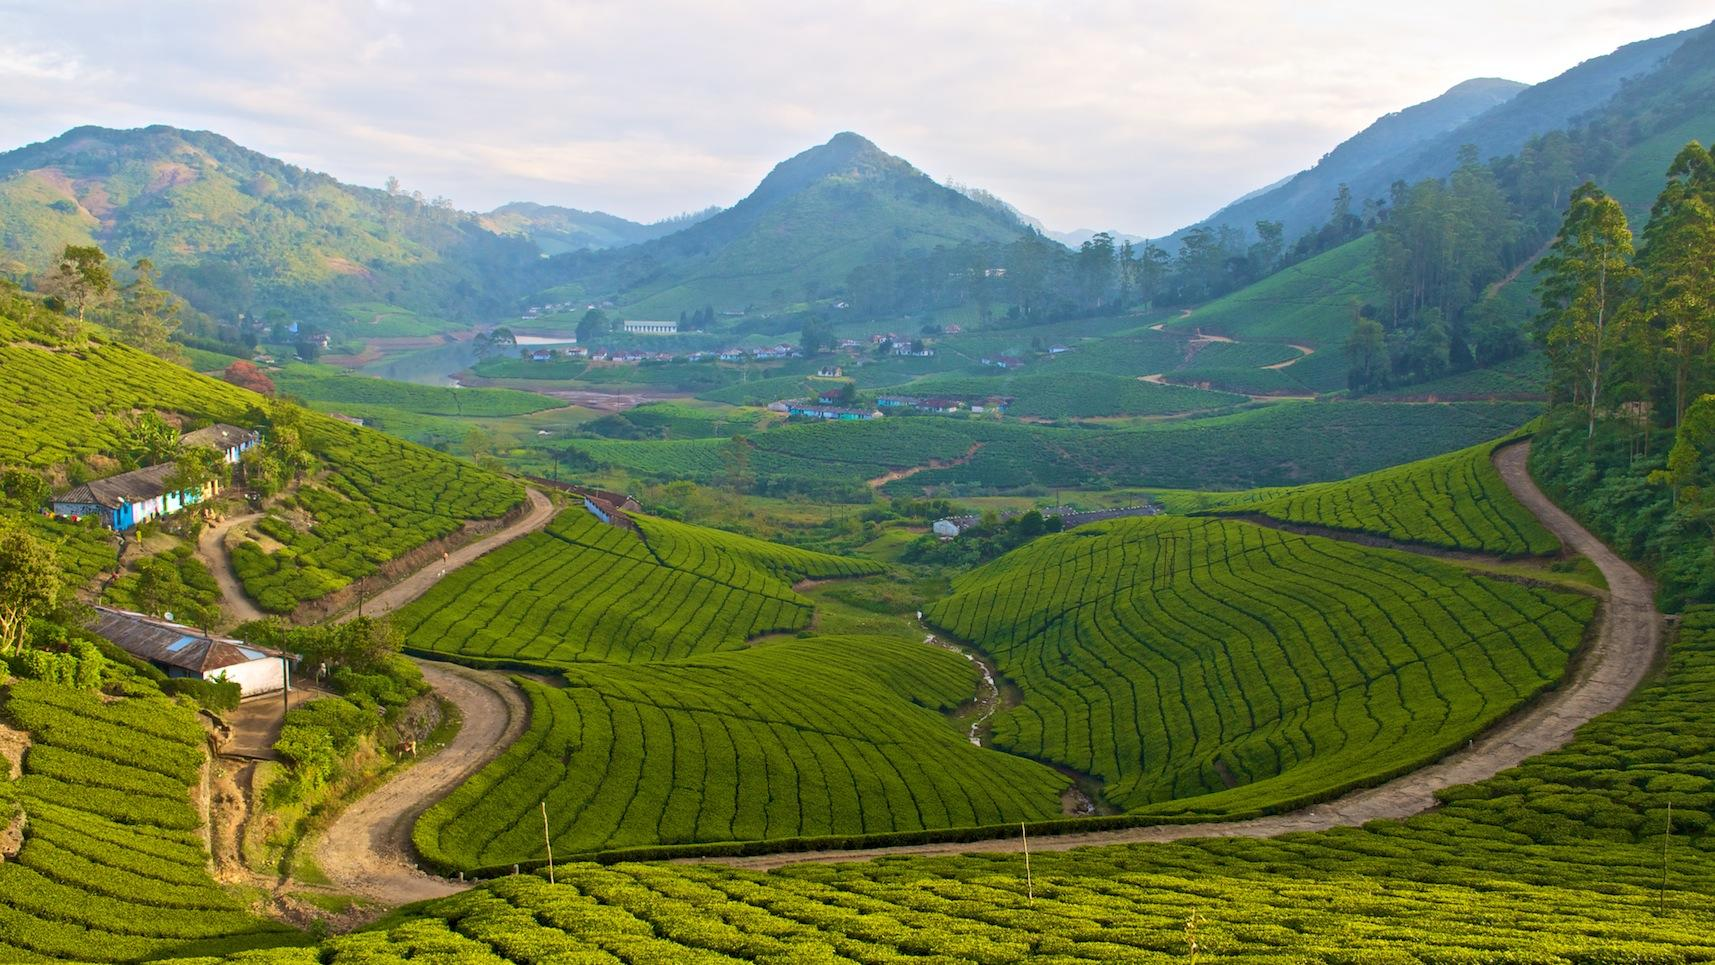 Meghamalai: Land of greens and blues